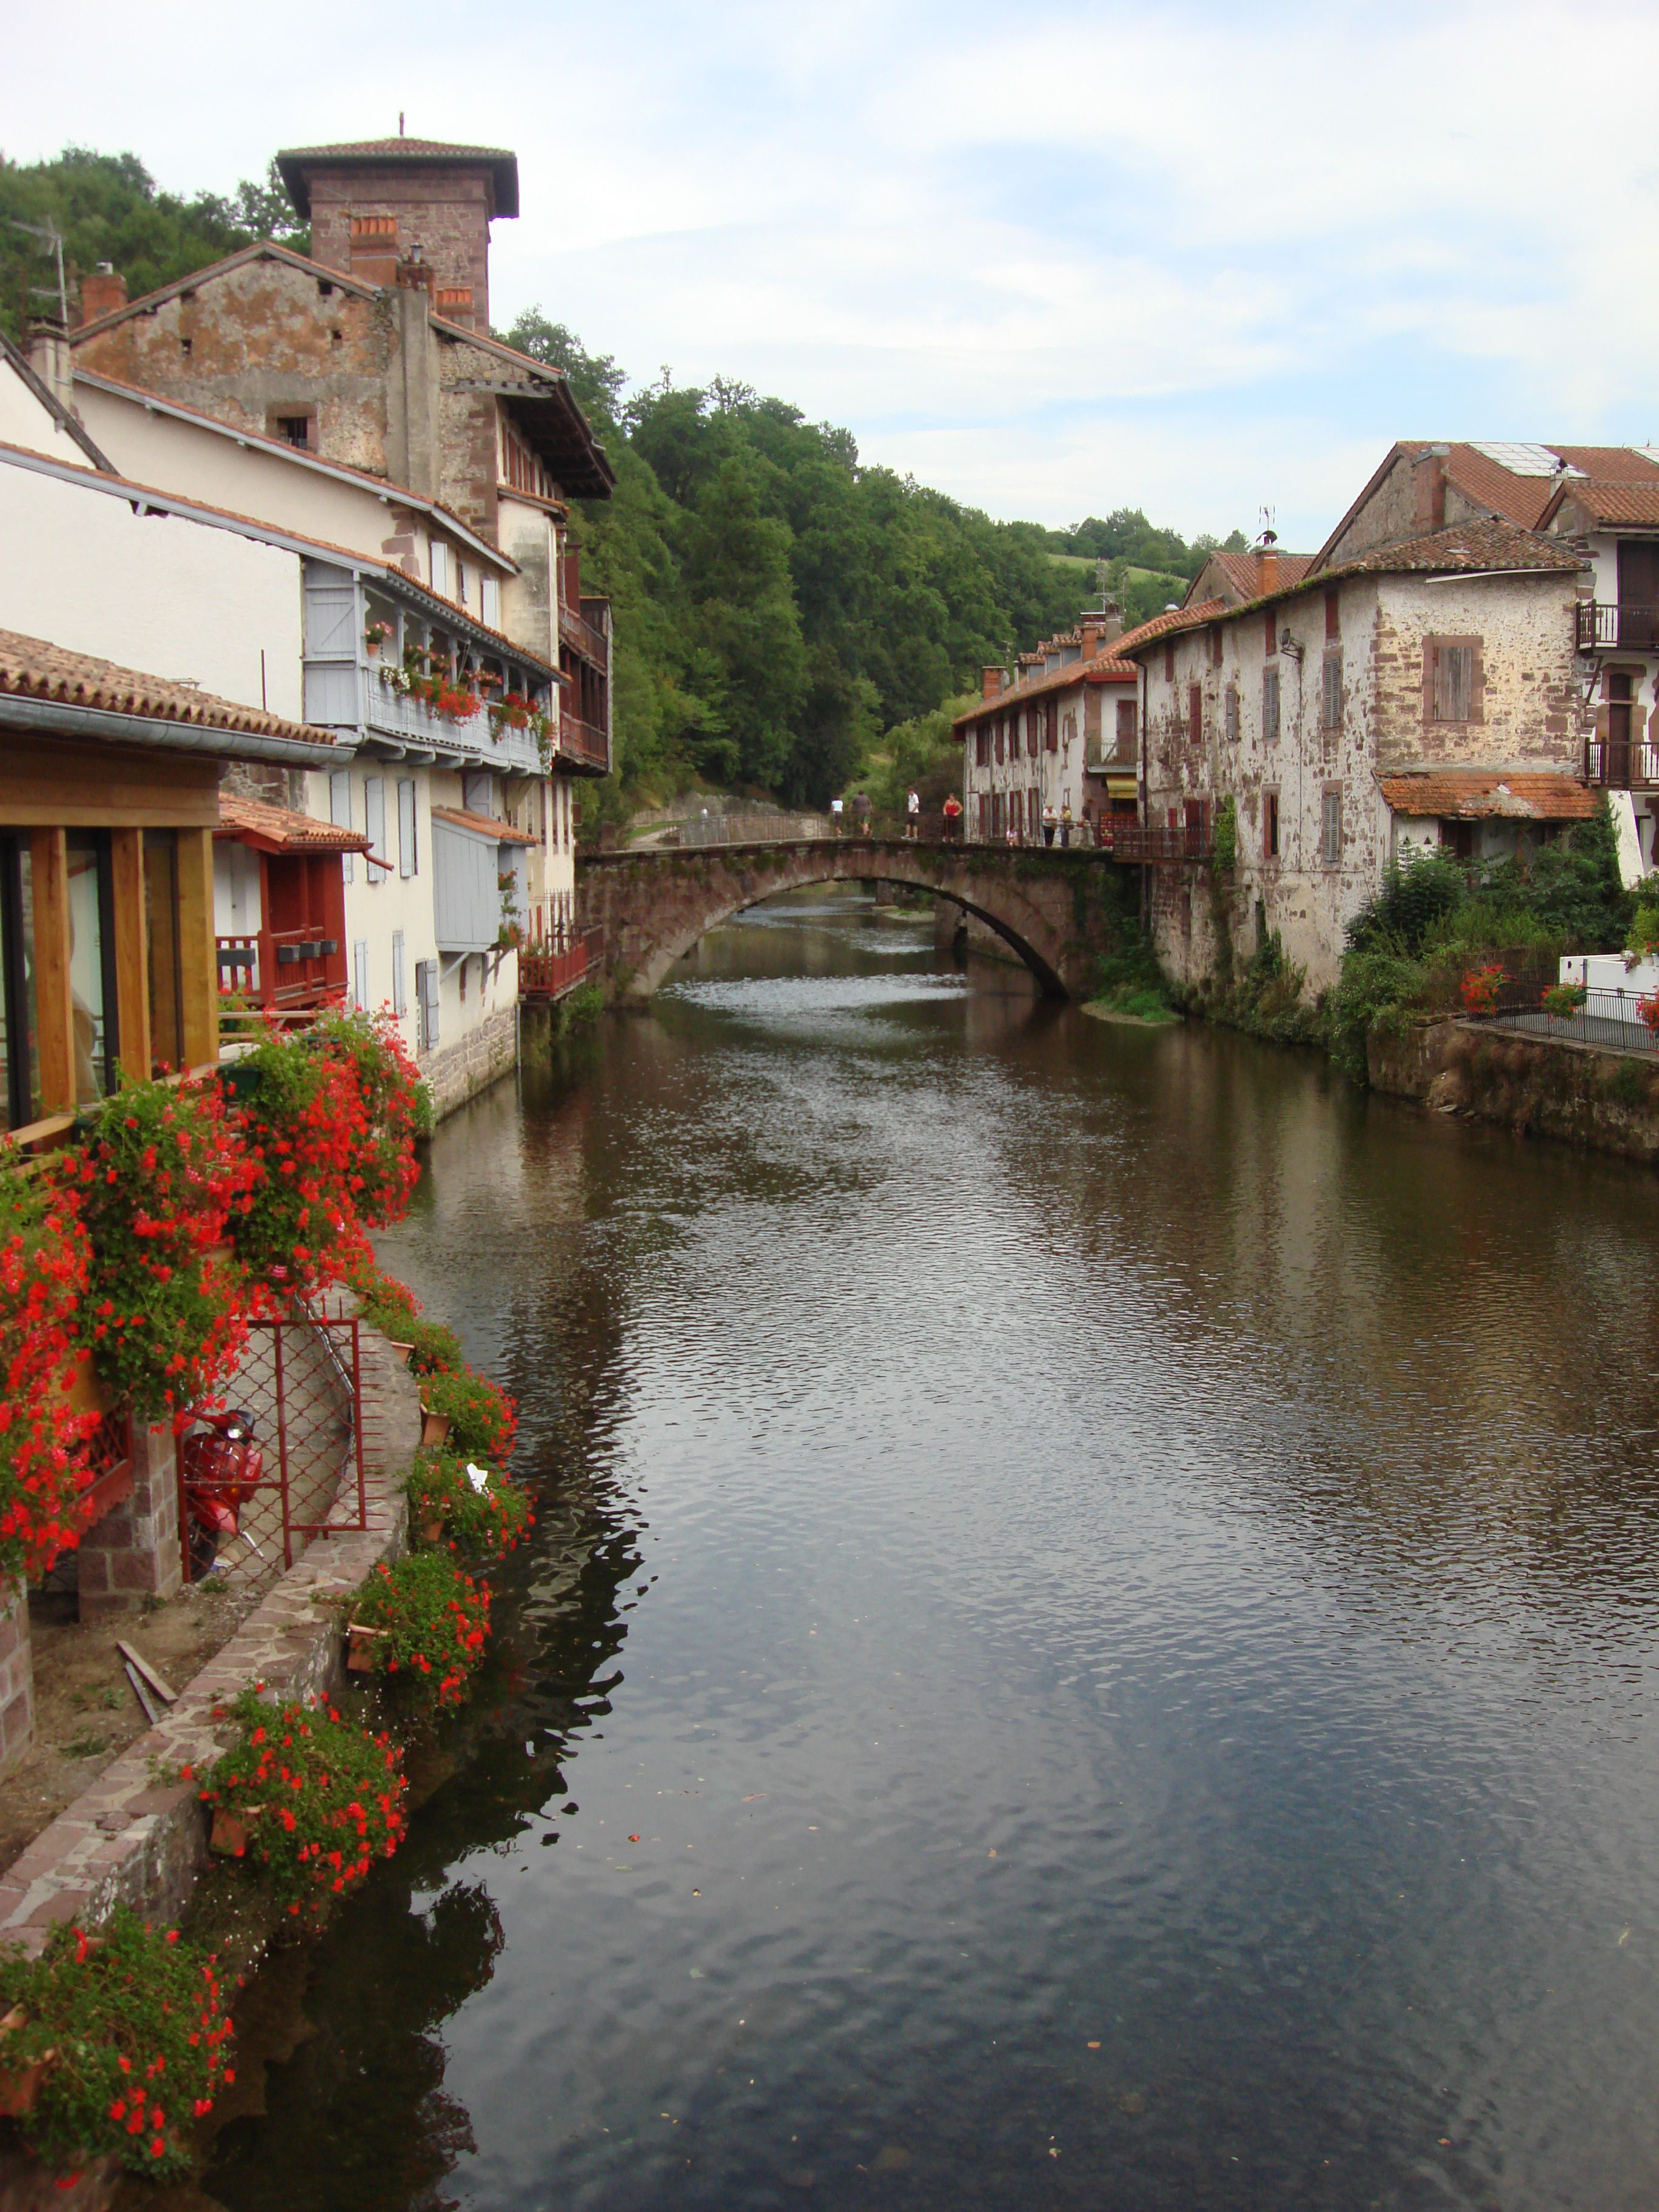 St jean pied de port france on the french side of the pyrenees for many the starting point - Hostel st jean pied de port ...